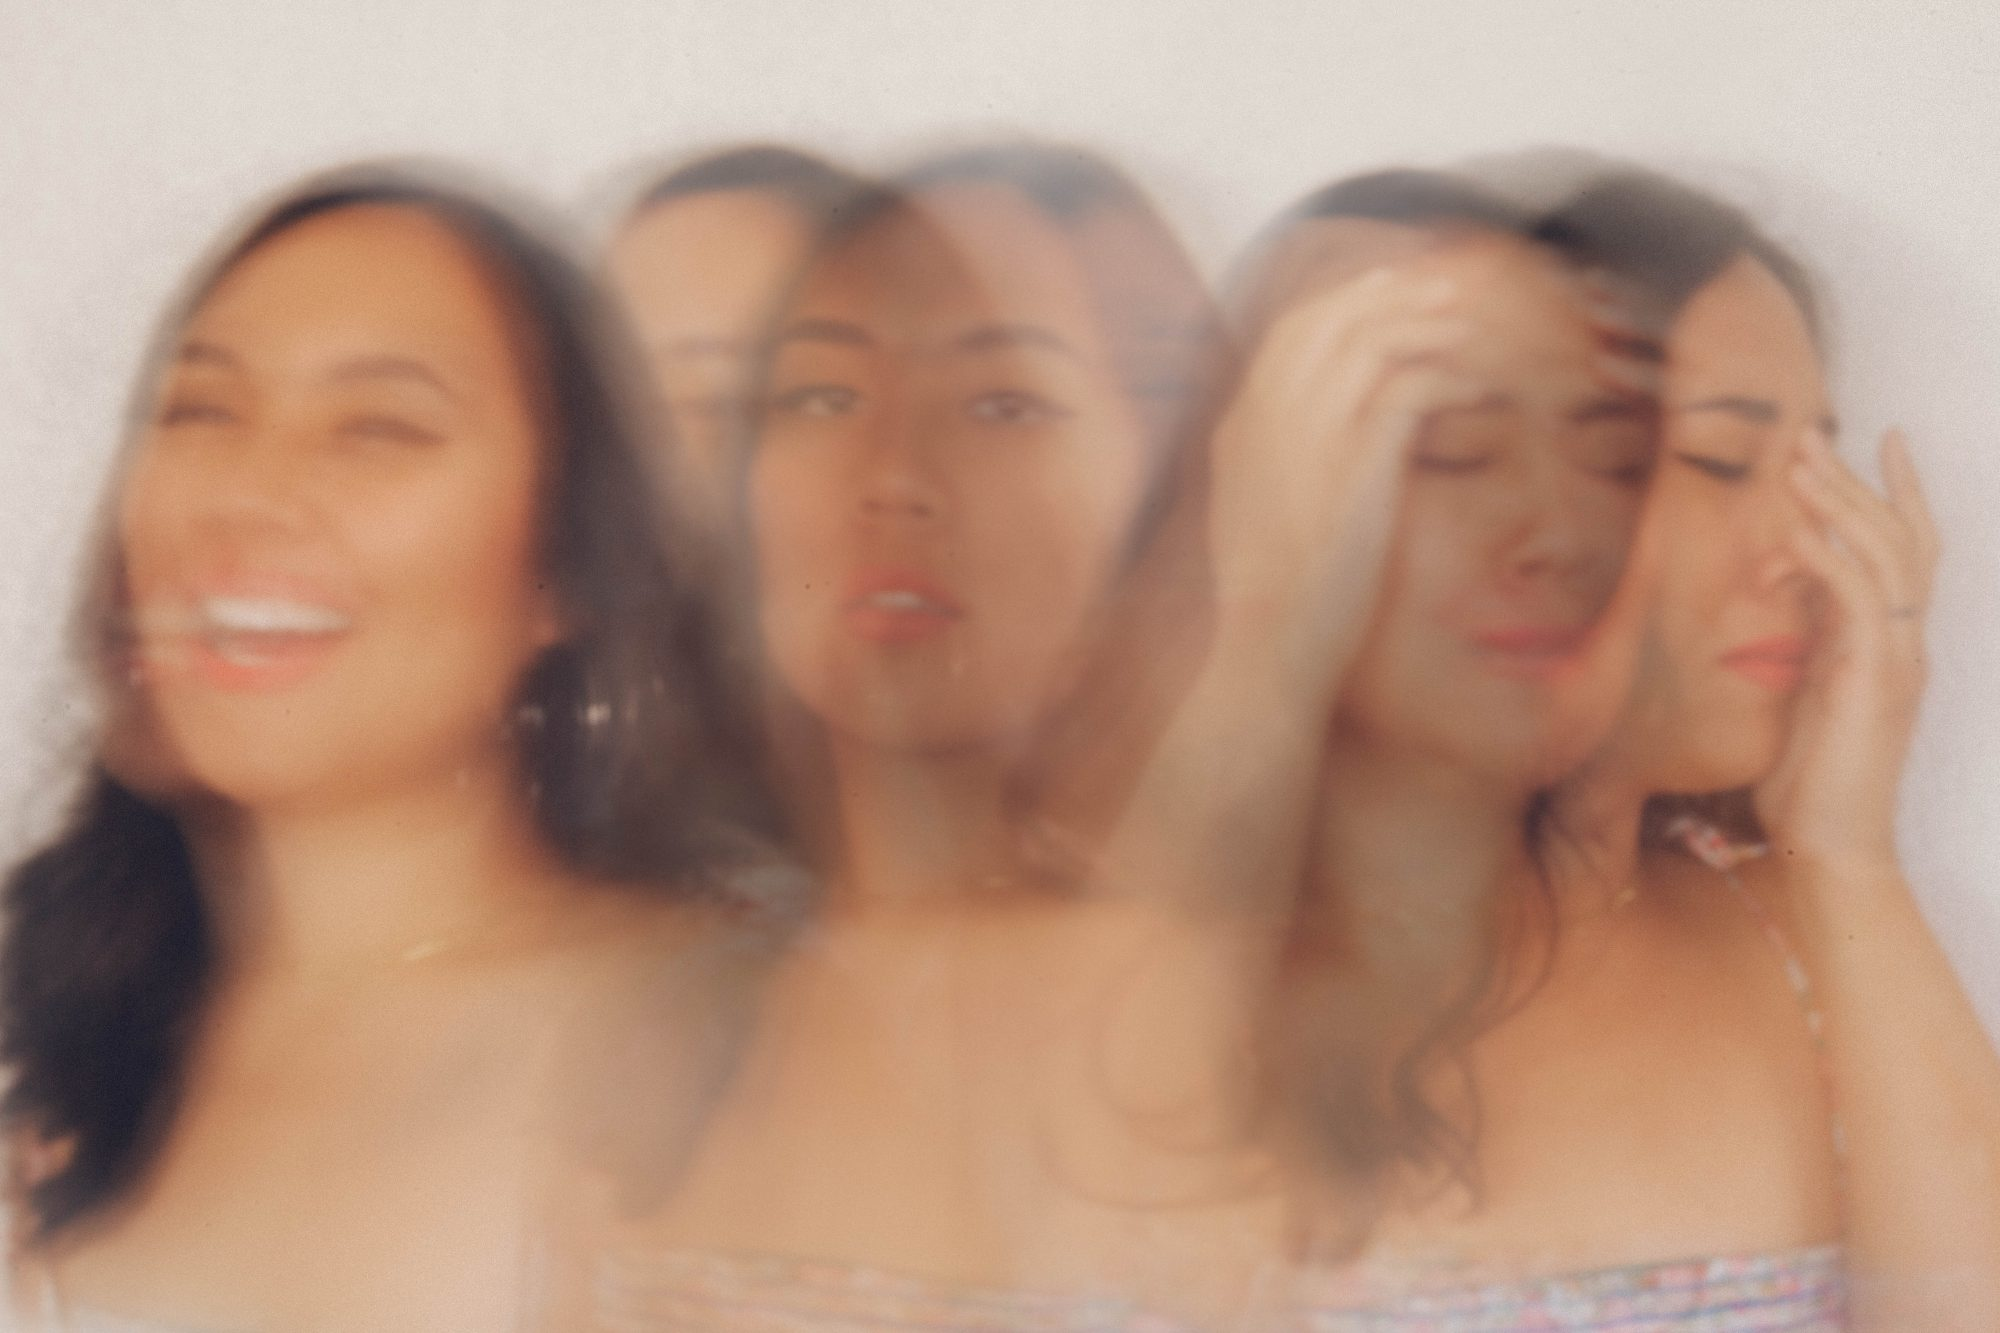 Long exposure photo of woman experiencing emotions from happy to sad